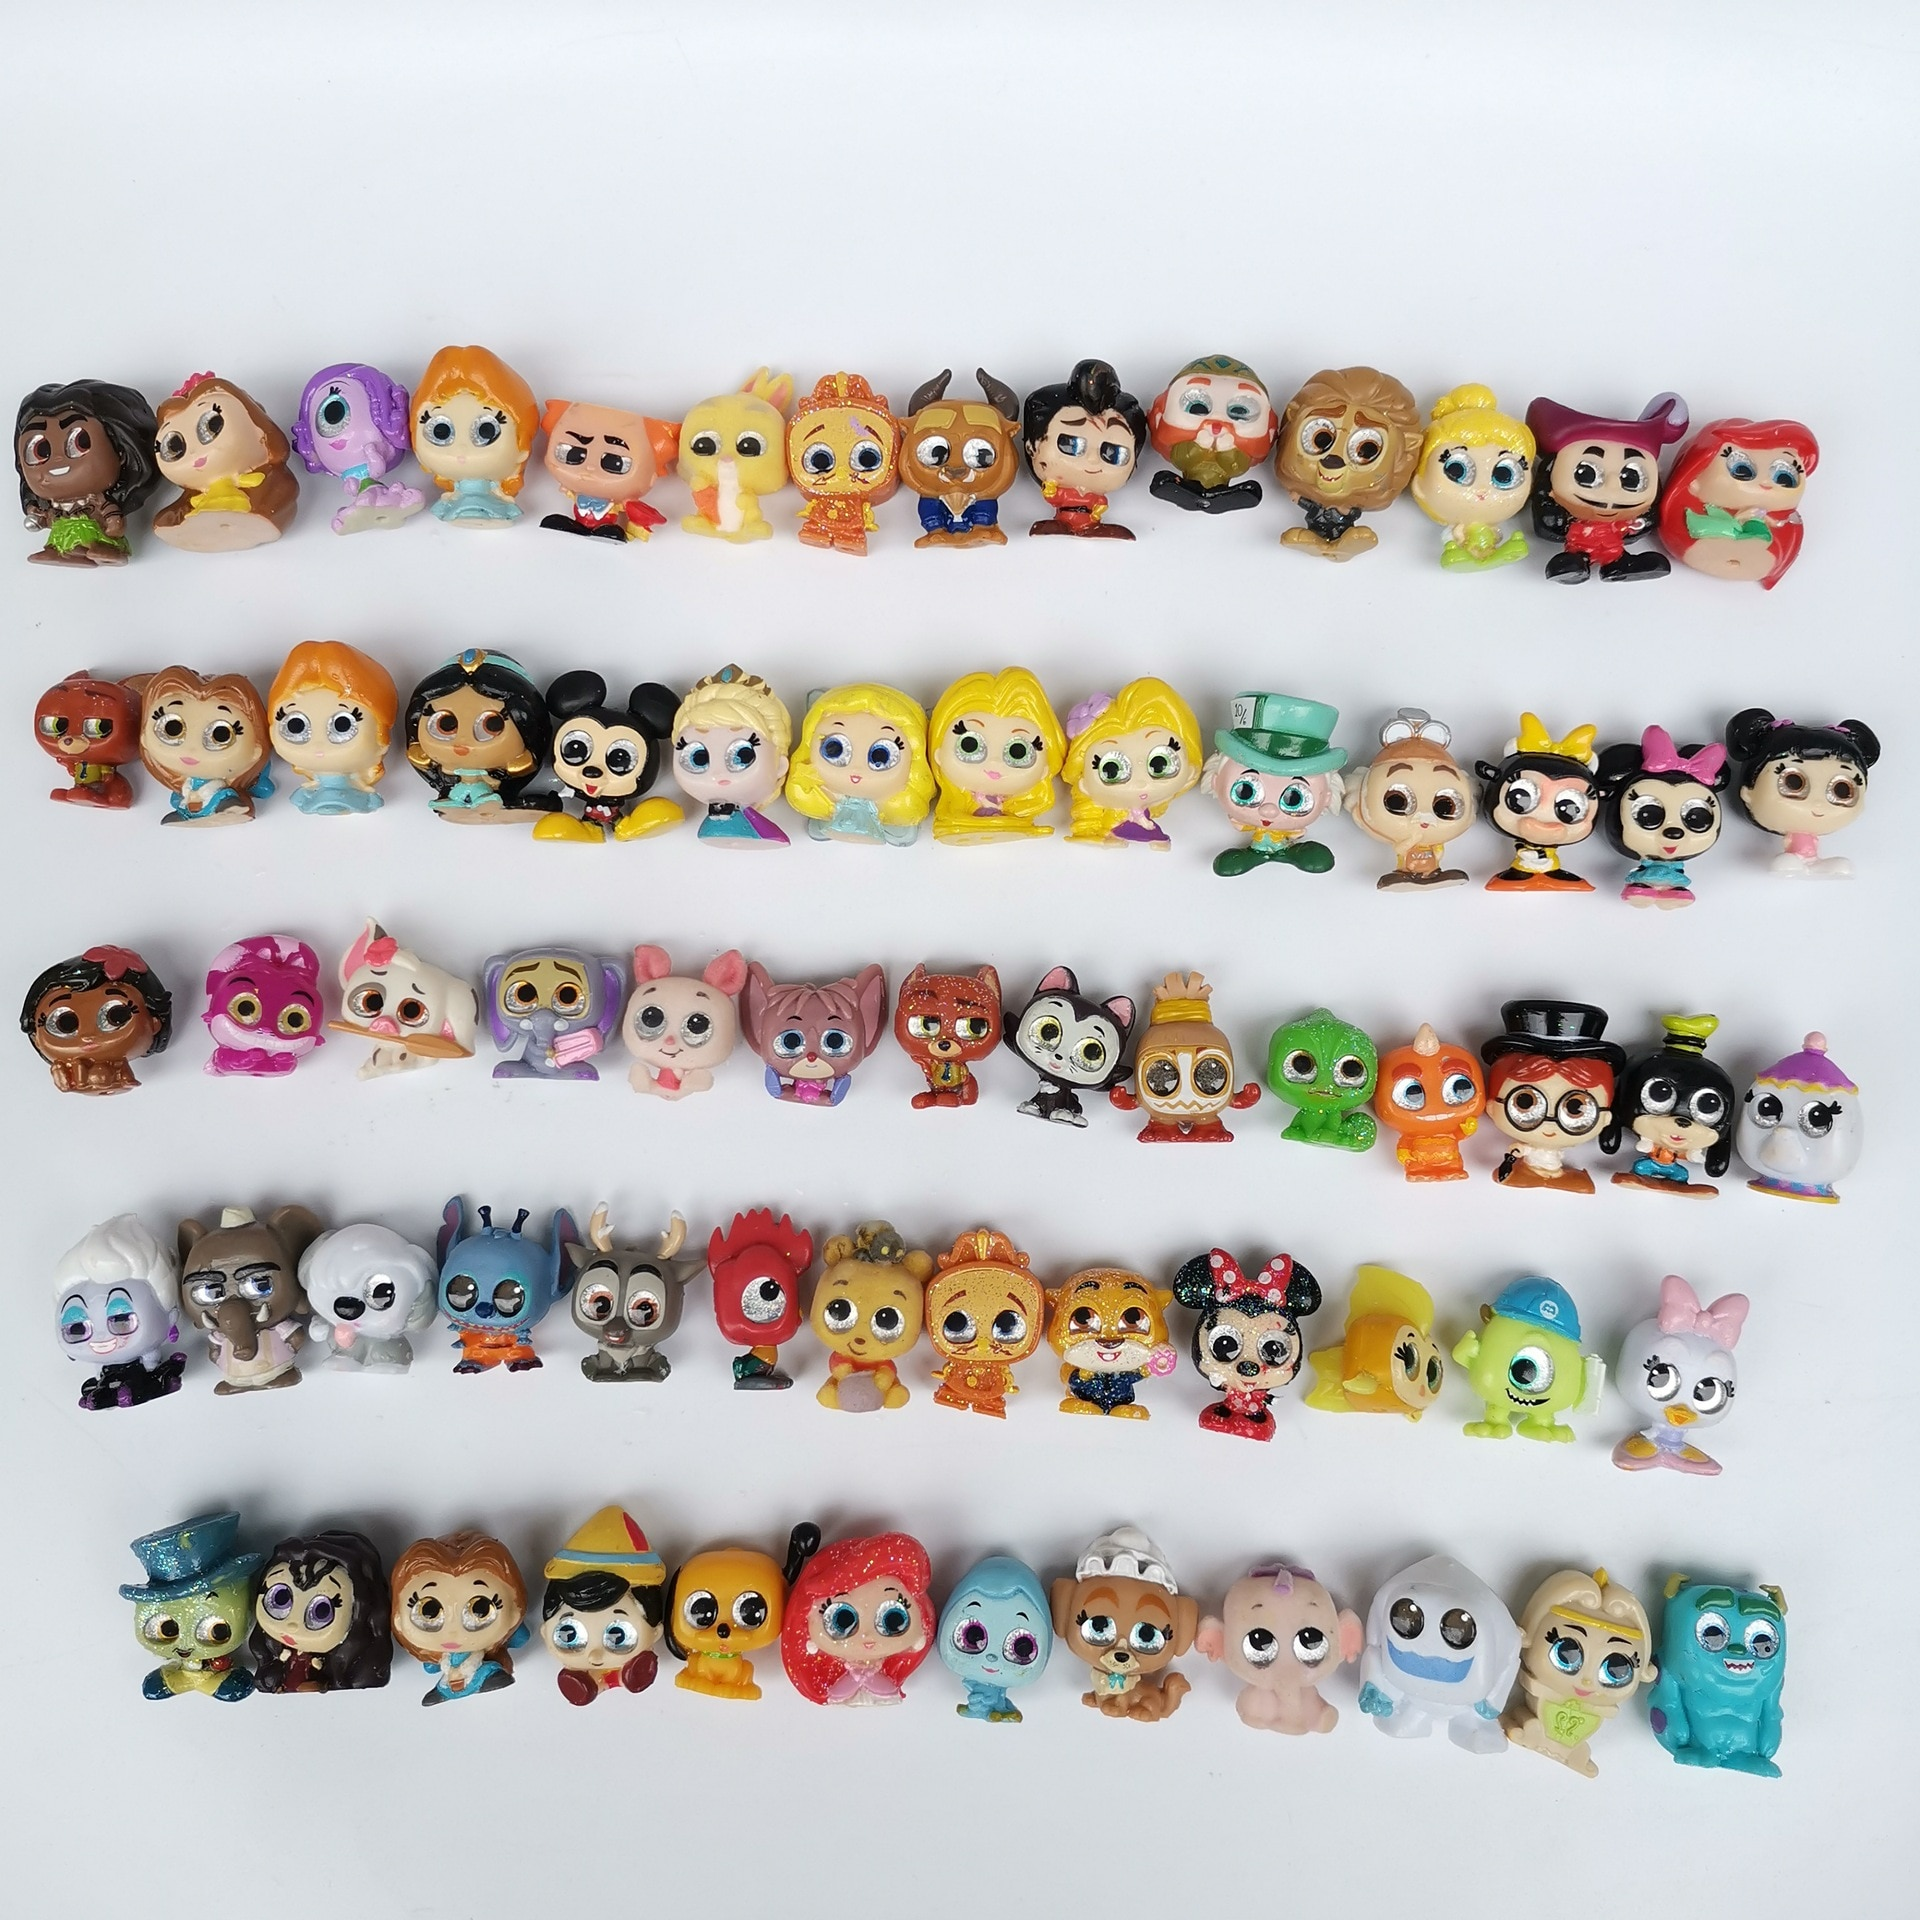 100pcs Different Disney Doorables Princess Dolls Series Cartoon Monsters Toy MINI SIZE Rare Anime Figurine Collection Model Toy